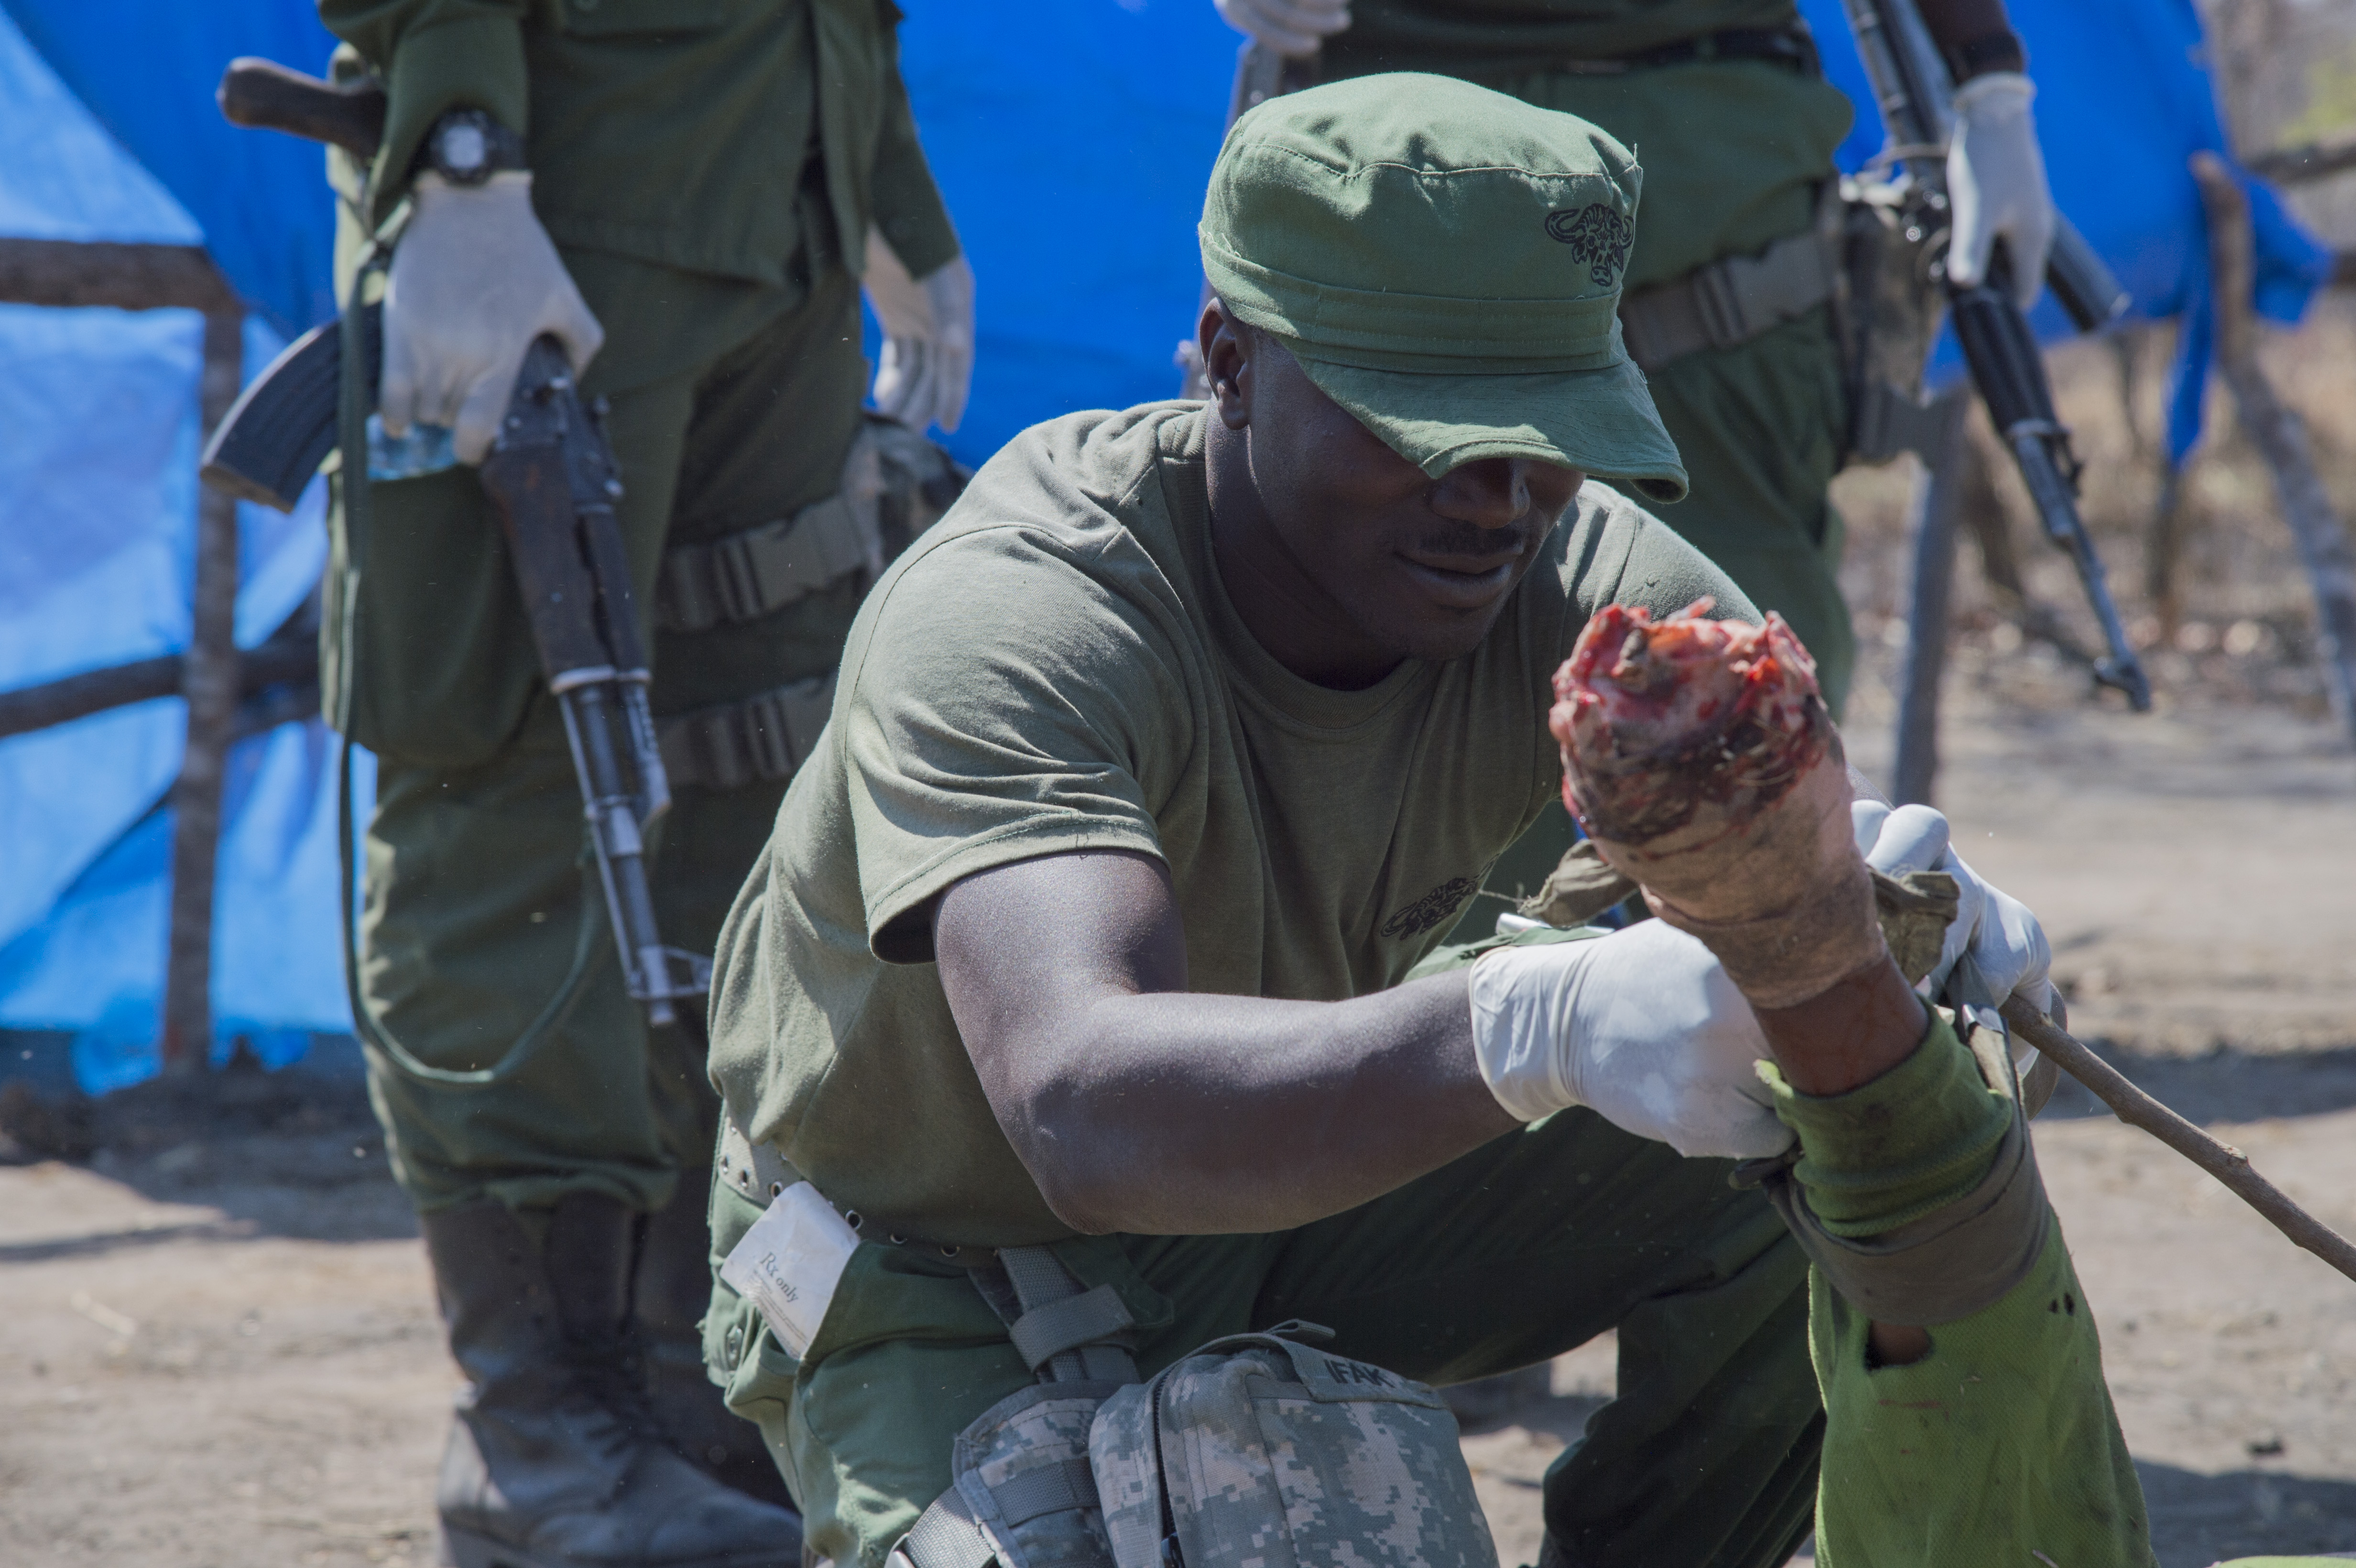 A Rungwa Game Reserve game warden applies a tourniquet to a simulated amputee during training Aug. 23, 2016, at Rungwa Game Reserve, Tanzania. Members form the 403rd Civil Affairs Battalion, a component of Joint Task Force - Horn of Africa, and North Carolina Army National Guard taught the rangers techniques to increase their skills in small unit tactics, first aid, gathering intelligence and other field crafts.  The soldiers were training the rangers in how to combat poachers on the reserve.  Poaching and trafficking in wildlife has become a source of revenue for violent extremist organizations on the continent. (U.S. Air Force photo by Staff Sgt. Eric Summers Jr./Released)